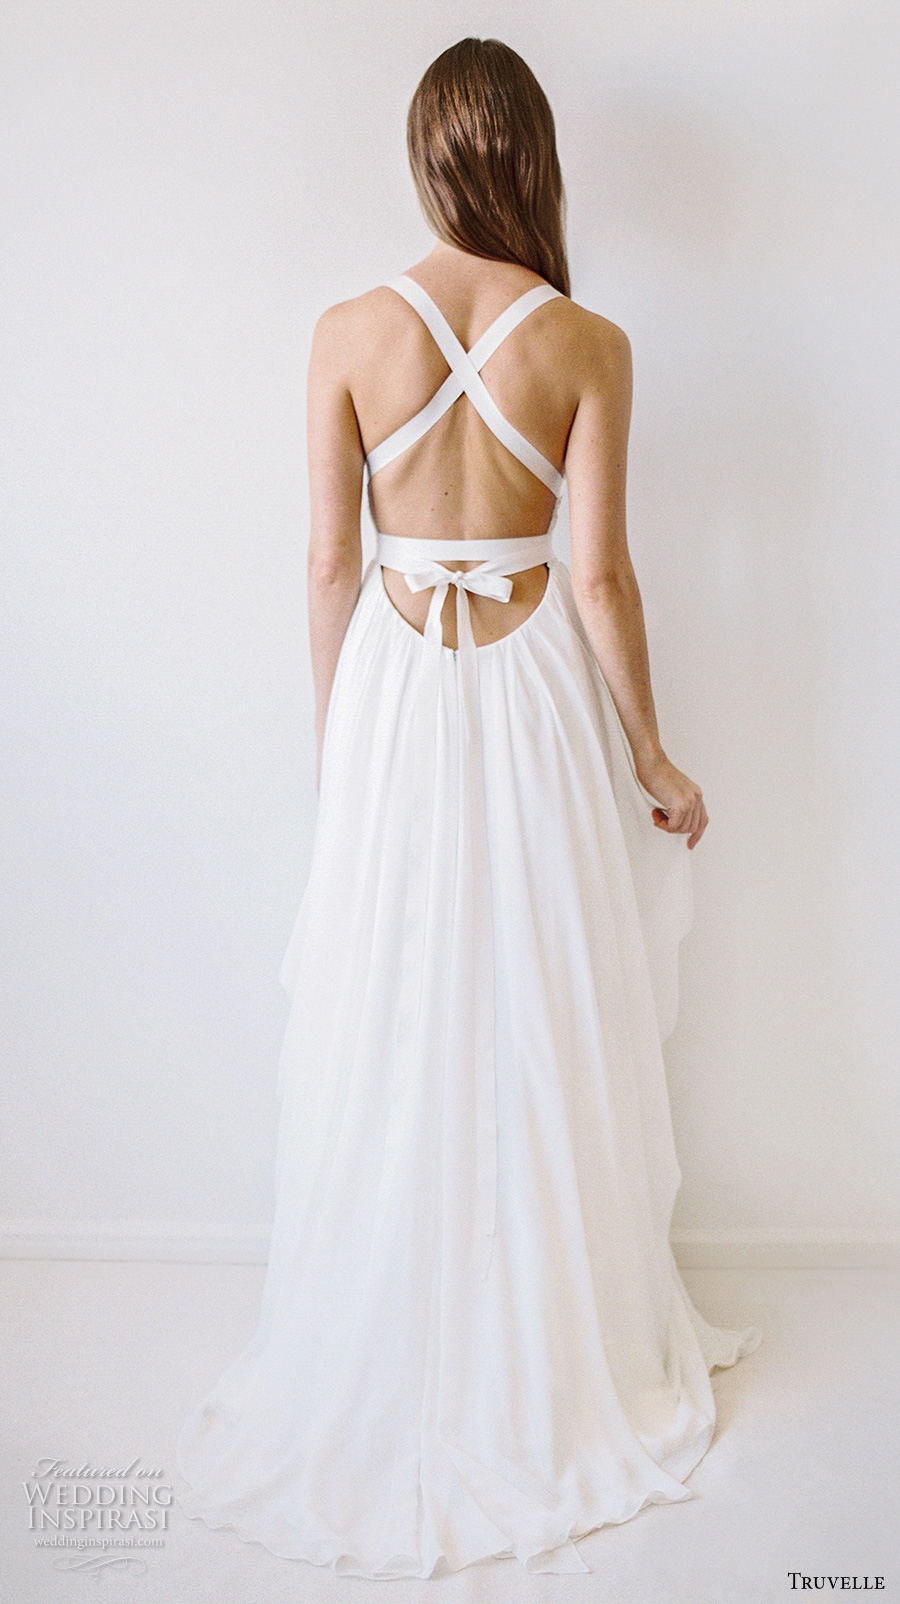 Sexy Dresses For Wedding 32 Amazing truvelle bridal truvelle bridal